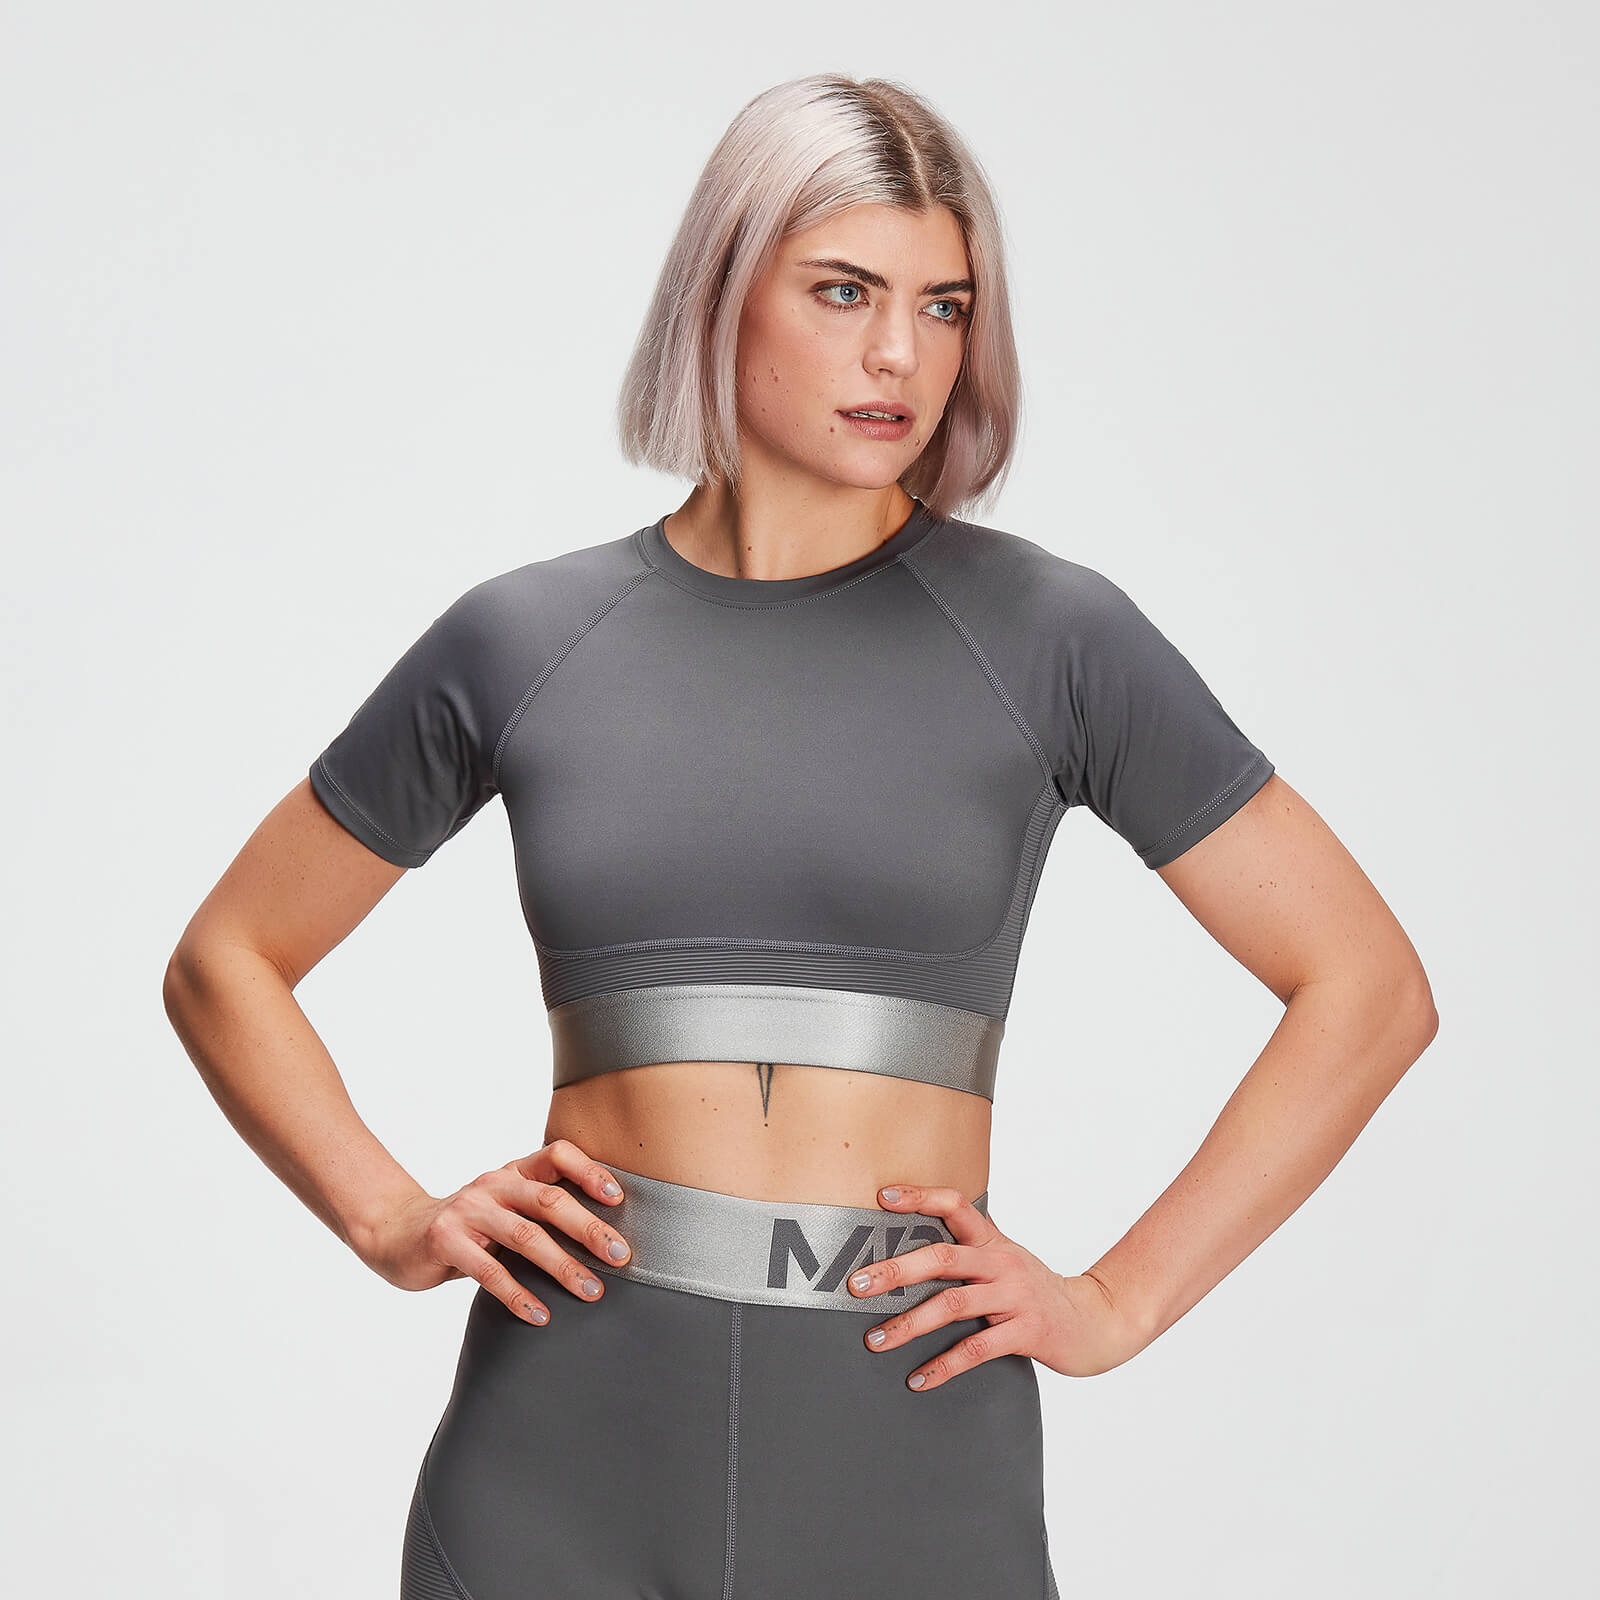 Crop top texturé MP Adapt pour femmes – Carbone - XXL